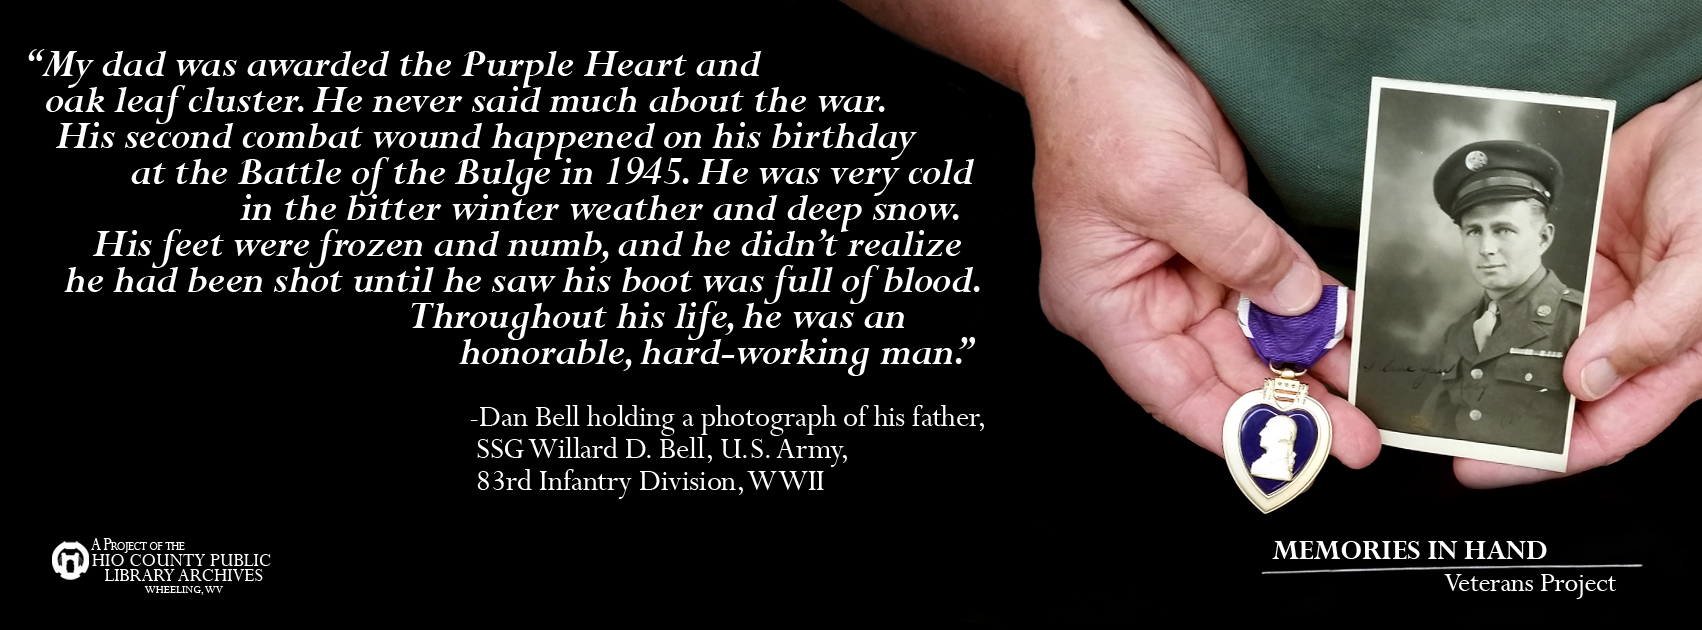 SSG Willard D. Bell, U. S. Army, 83rd Infantry Division, WWII, Purple Heart Recipient